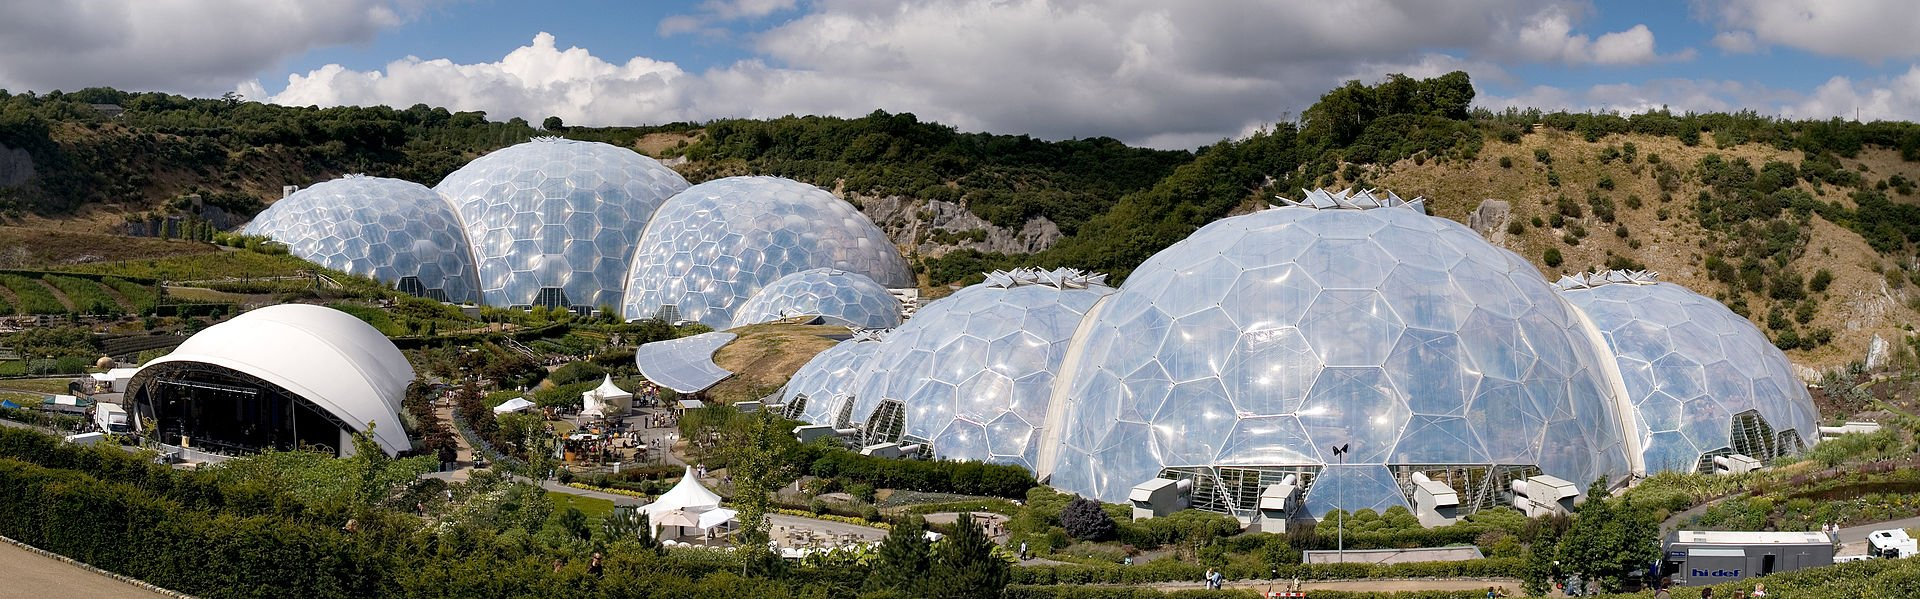 Click image for larger version  Name:Eden_Project.jpg Views:78 Size:393.1 KB ID:214873